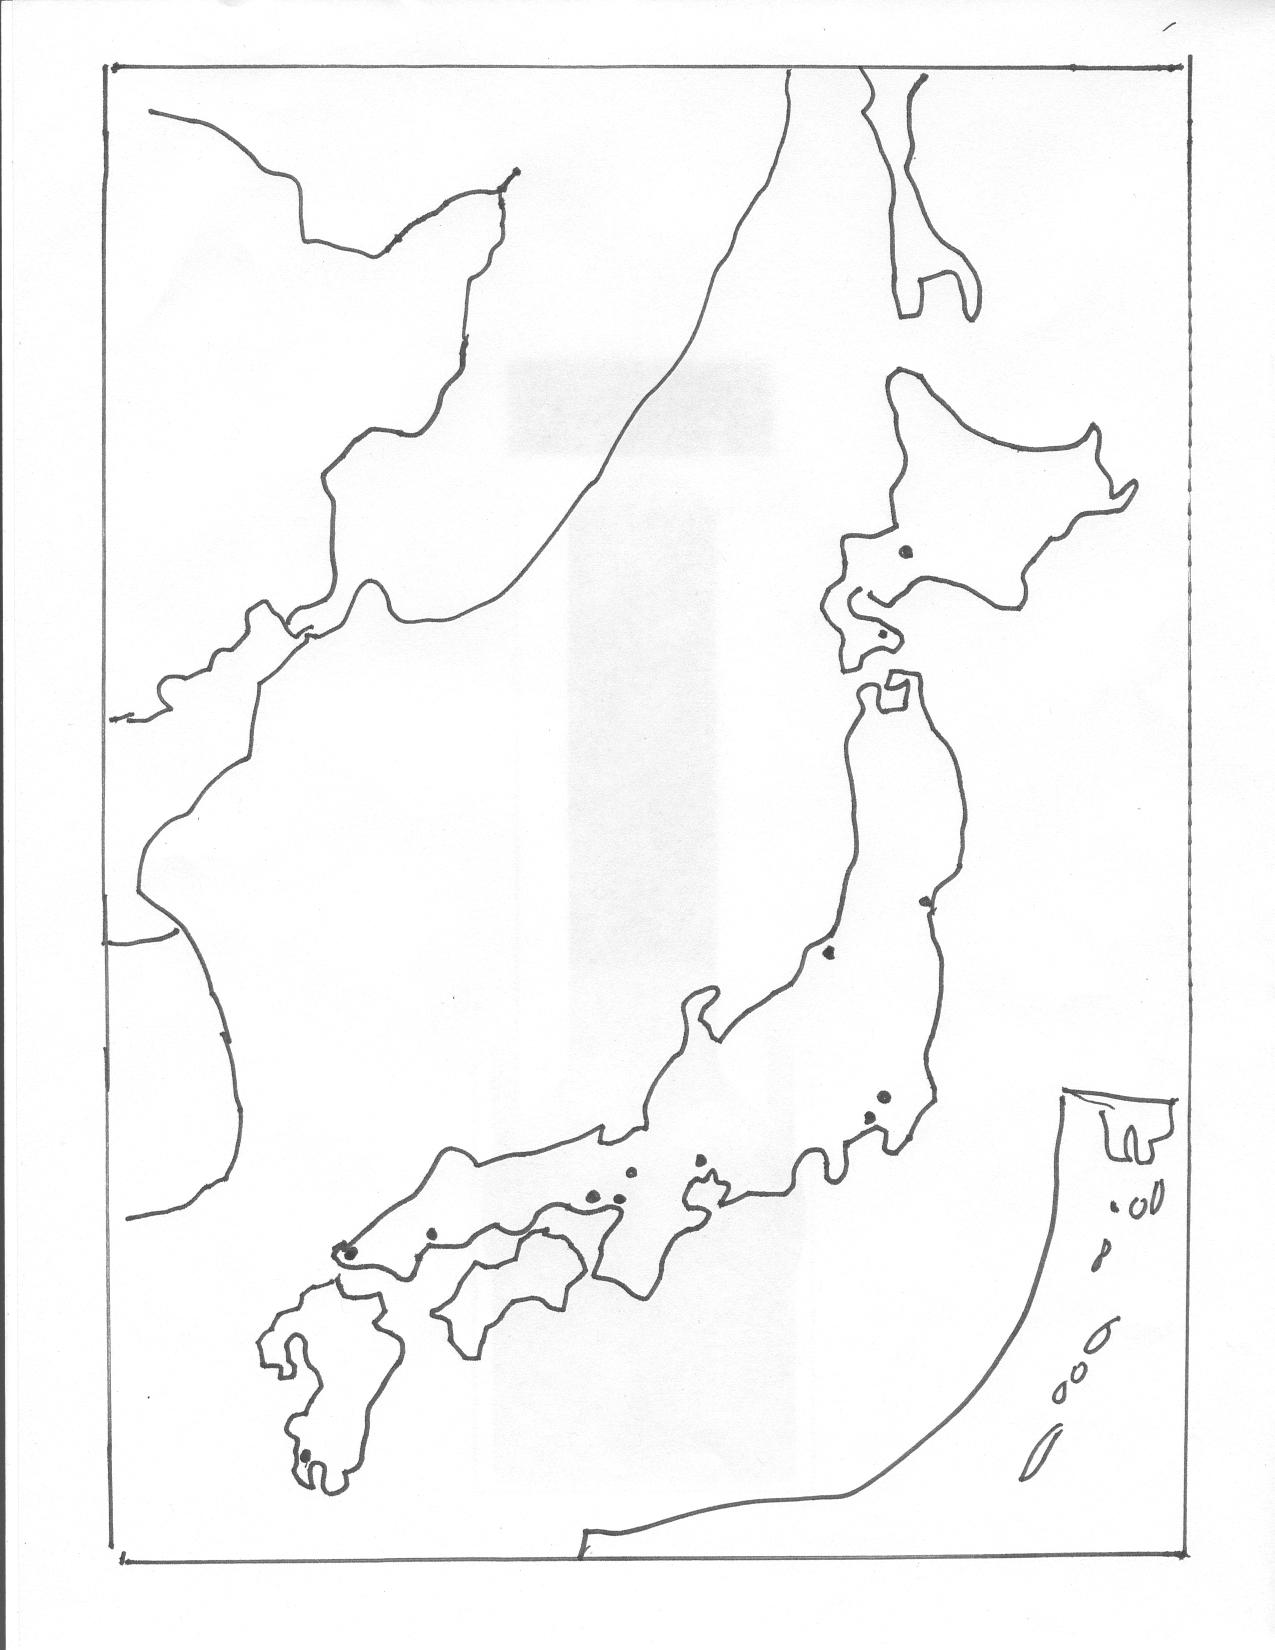 Japan Map Drawing At Getdrawings Com Free For Personal Use Japan